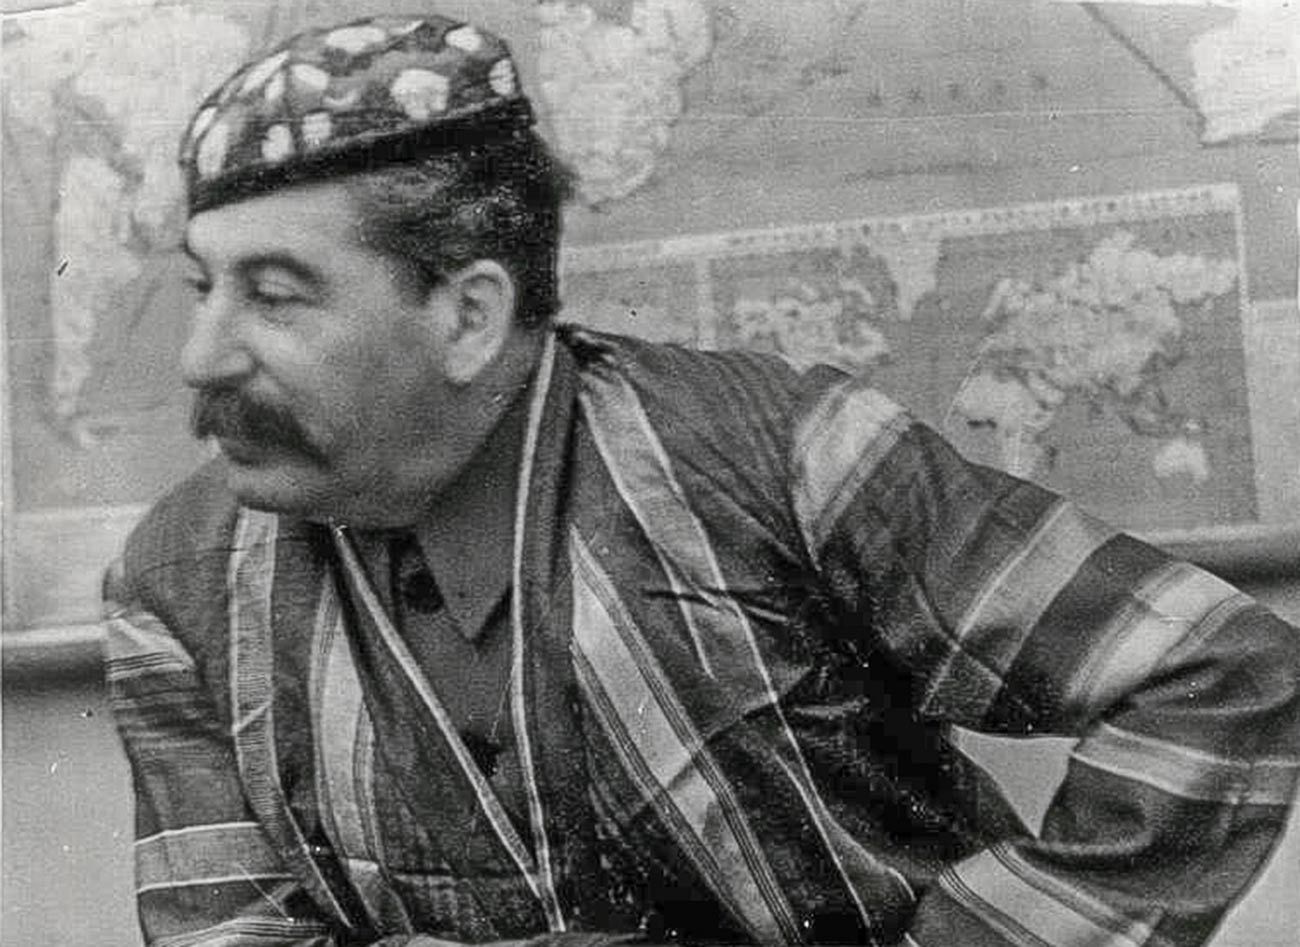 Joseph Stalin in Uzbek national clothes, 1930s